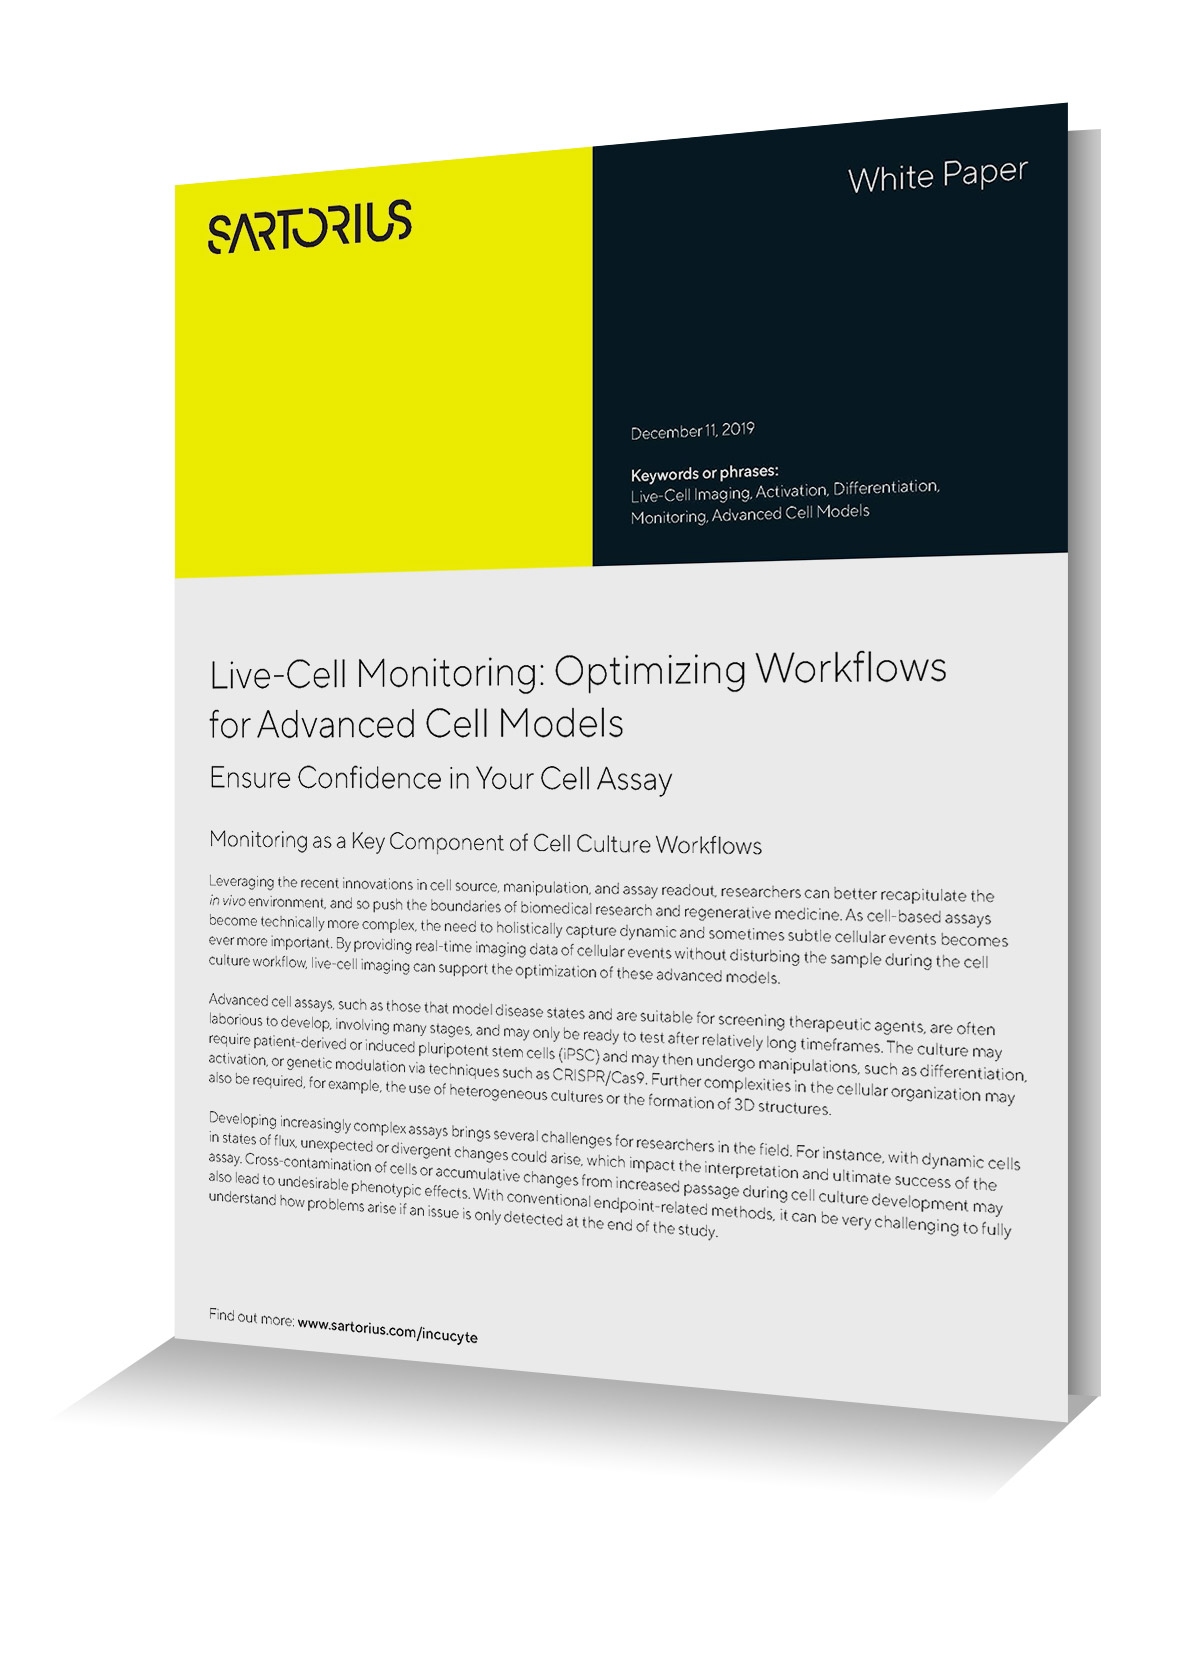 White Paper - Live-cell monitoring - optimizing workflow advanced cell monitoring Image